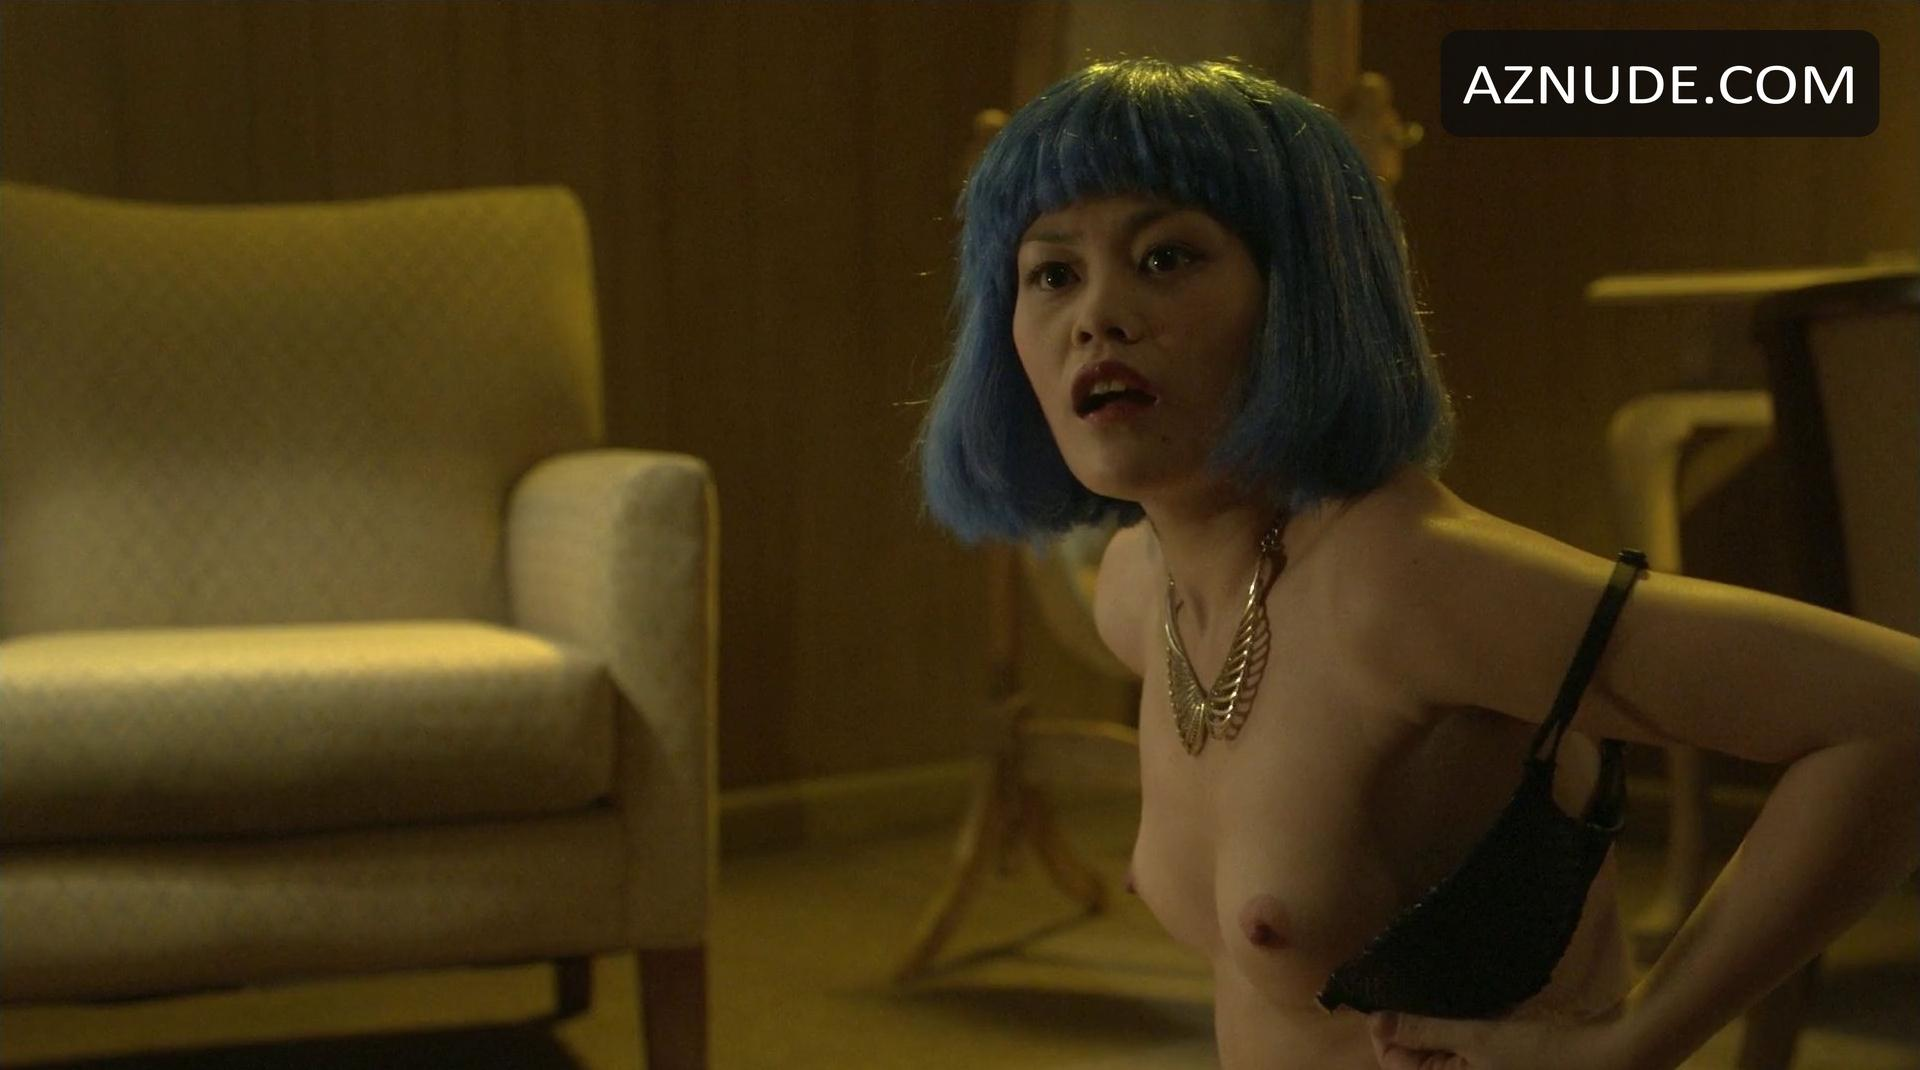 Emily piggford nude sex scene in hemlock grove series - 3 part 7